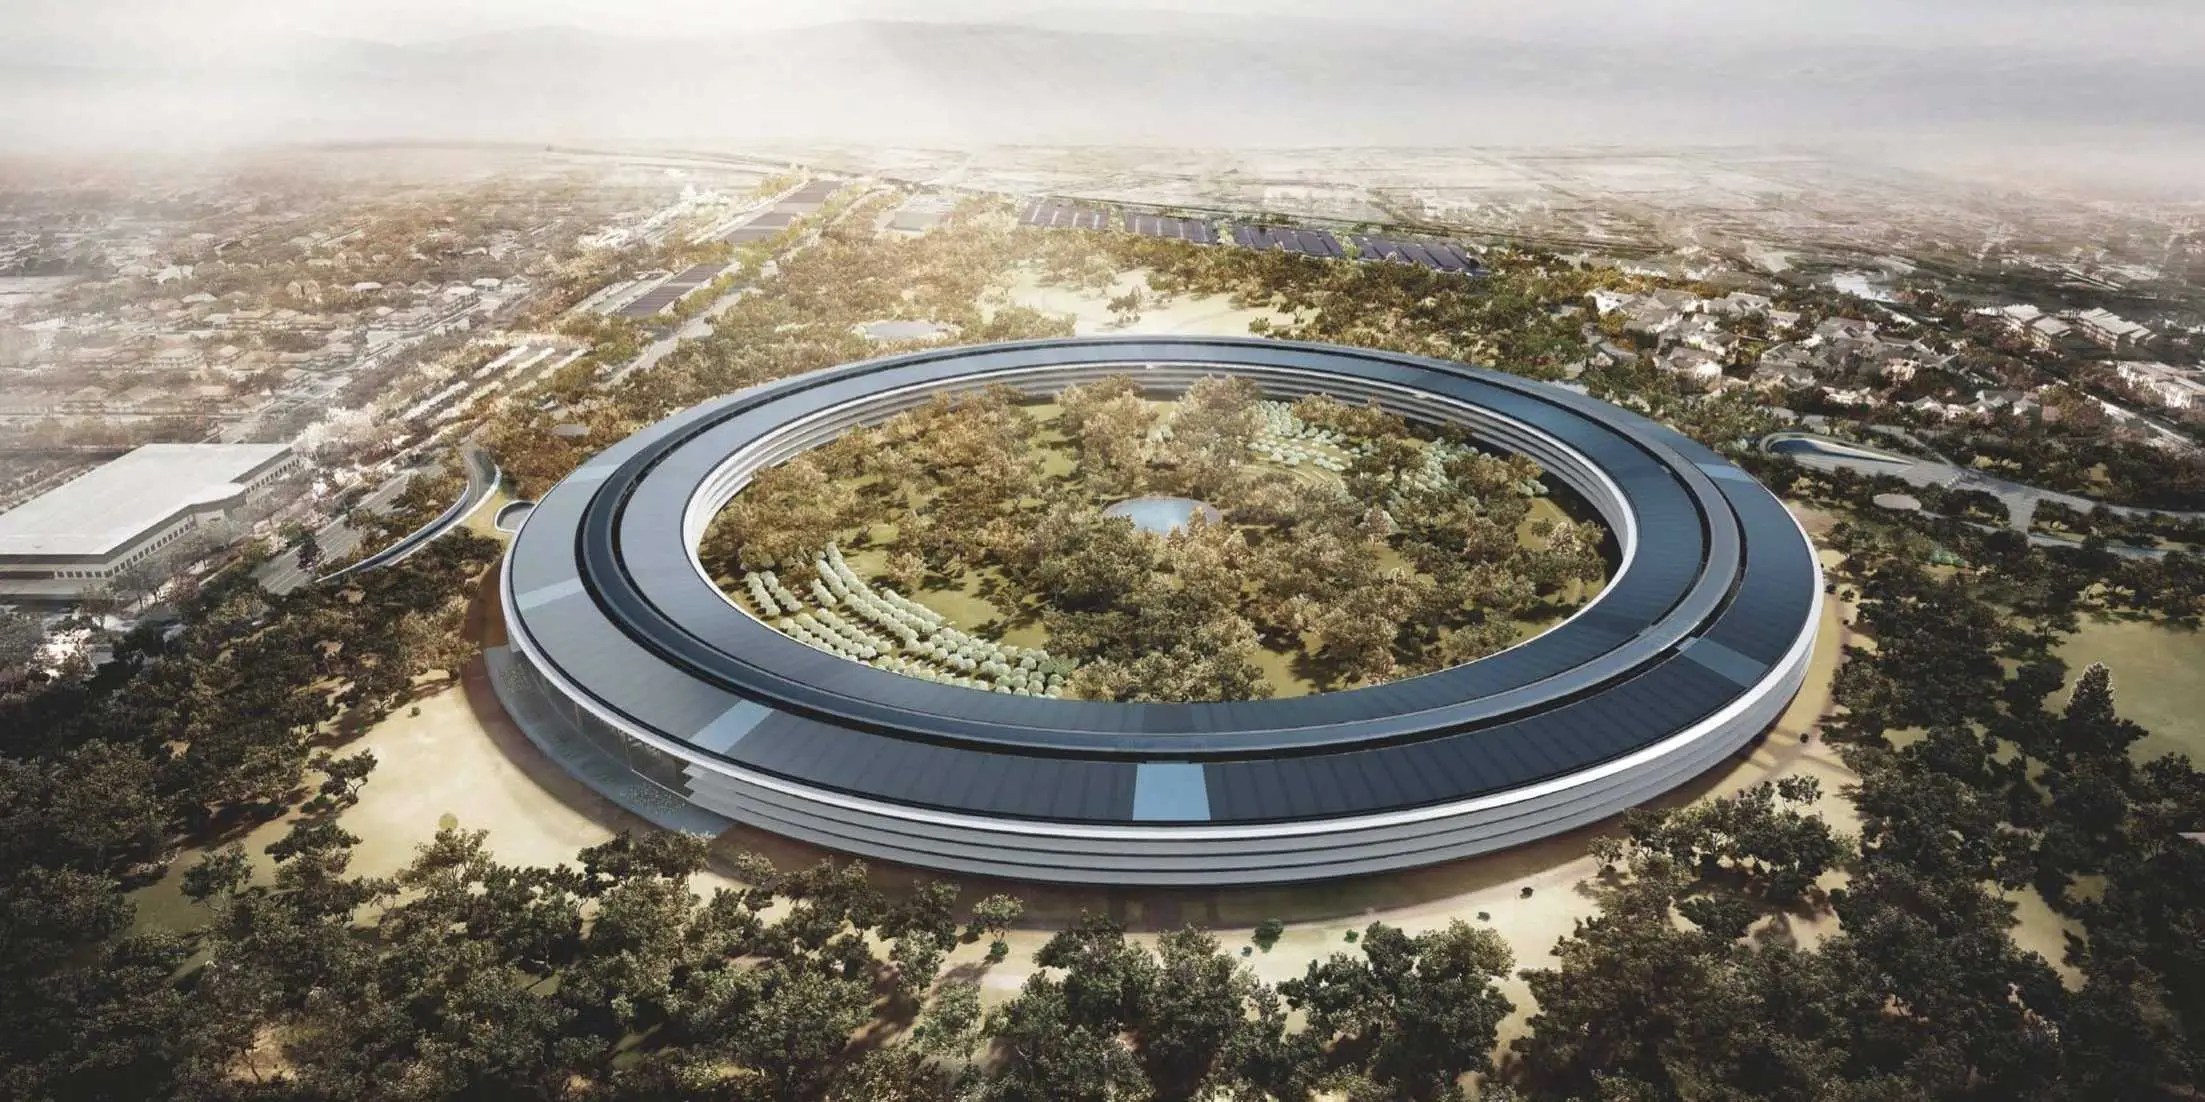 http://www.businessinsider.com/apple-spaceship-campus-2-drone-flyover-video-2016-9